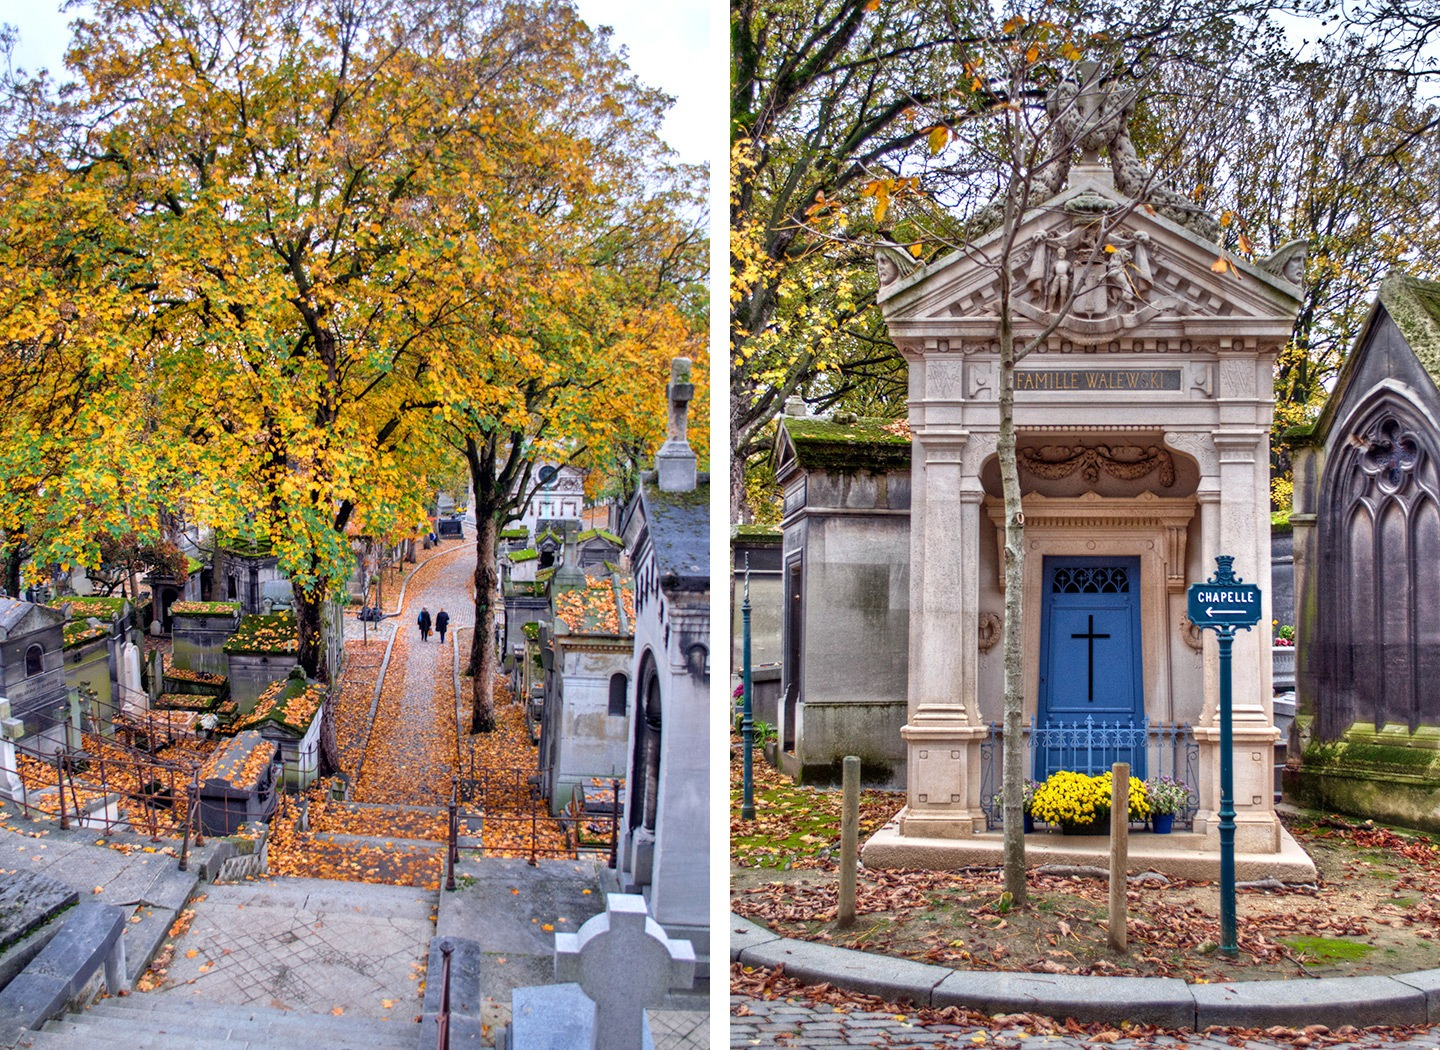 Père-Lachaise cemetery in Paris